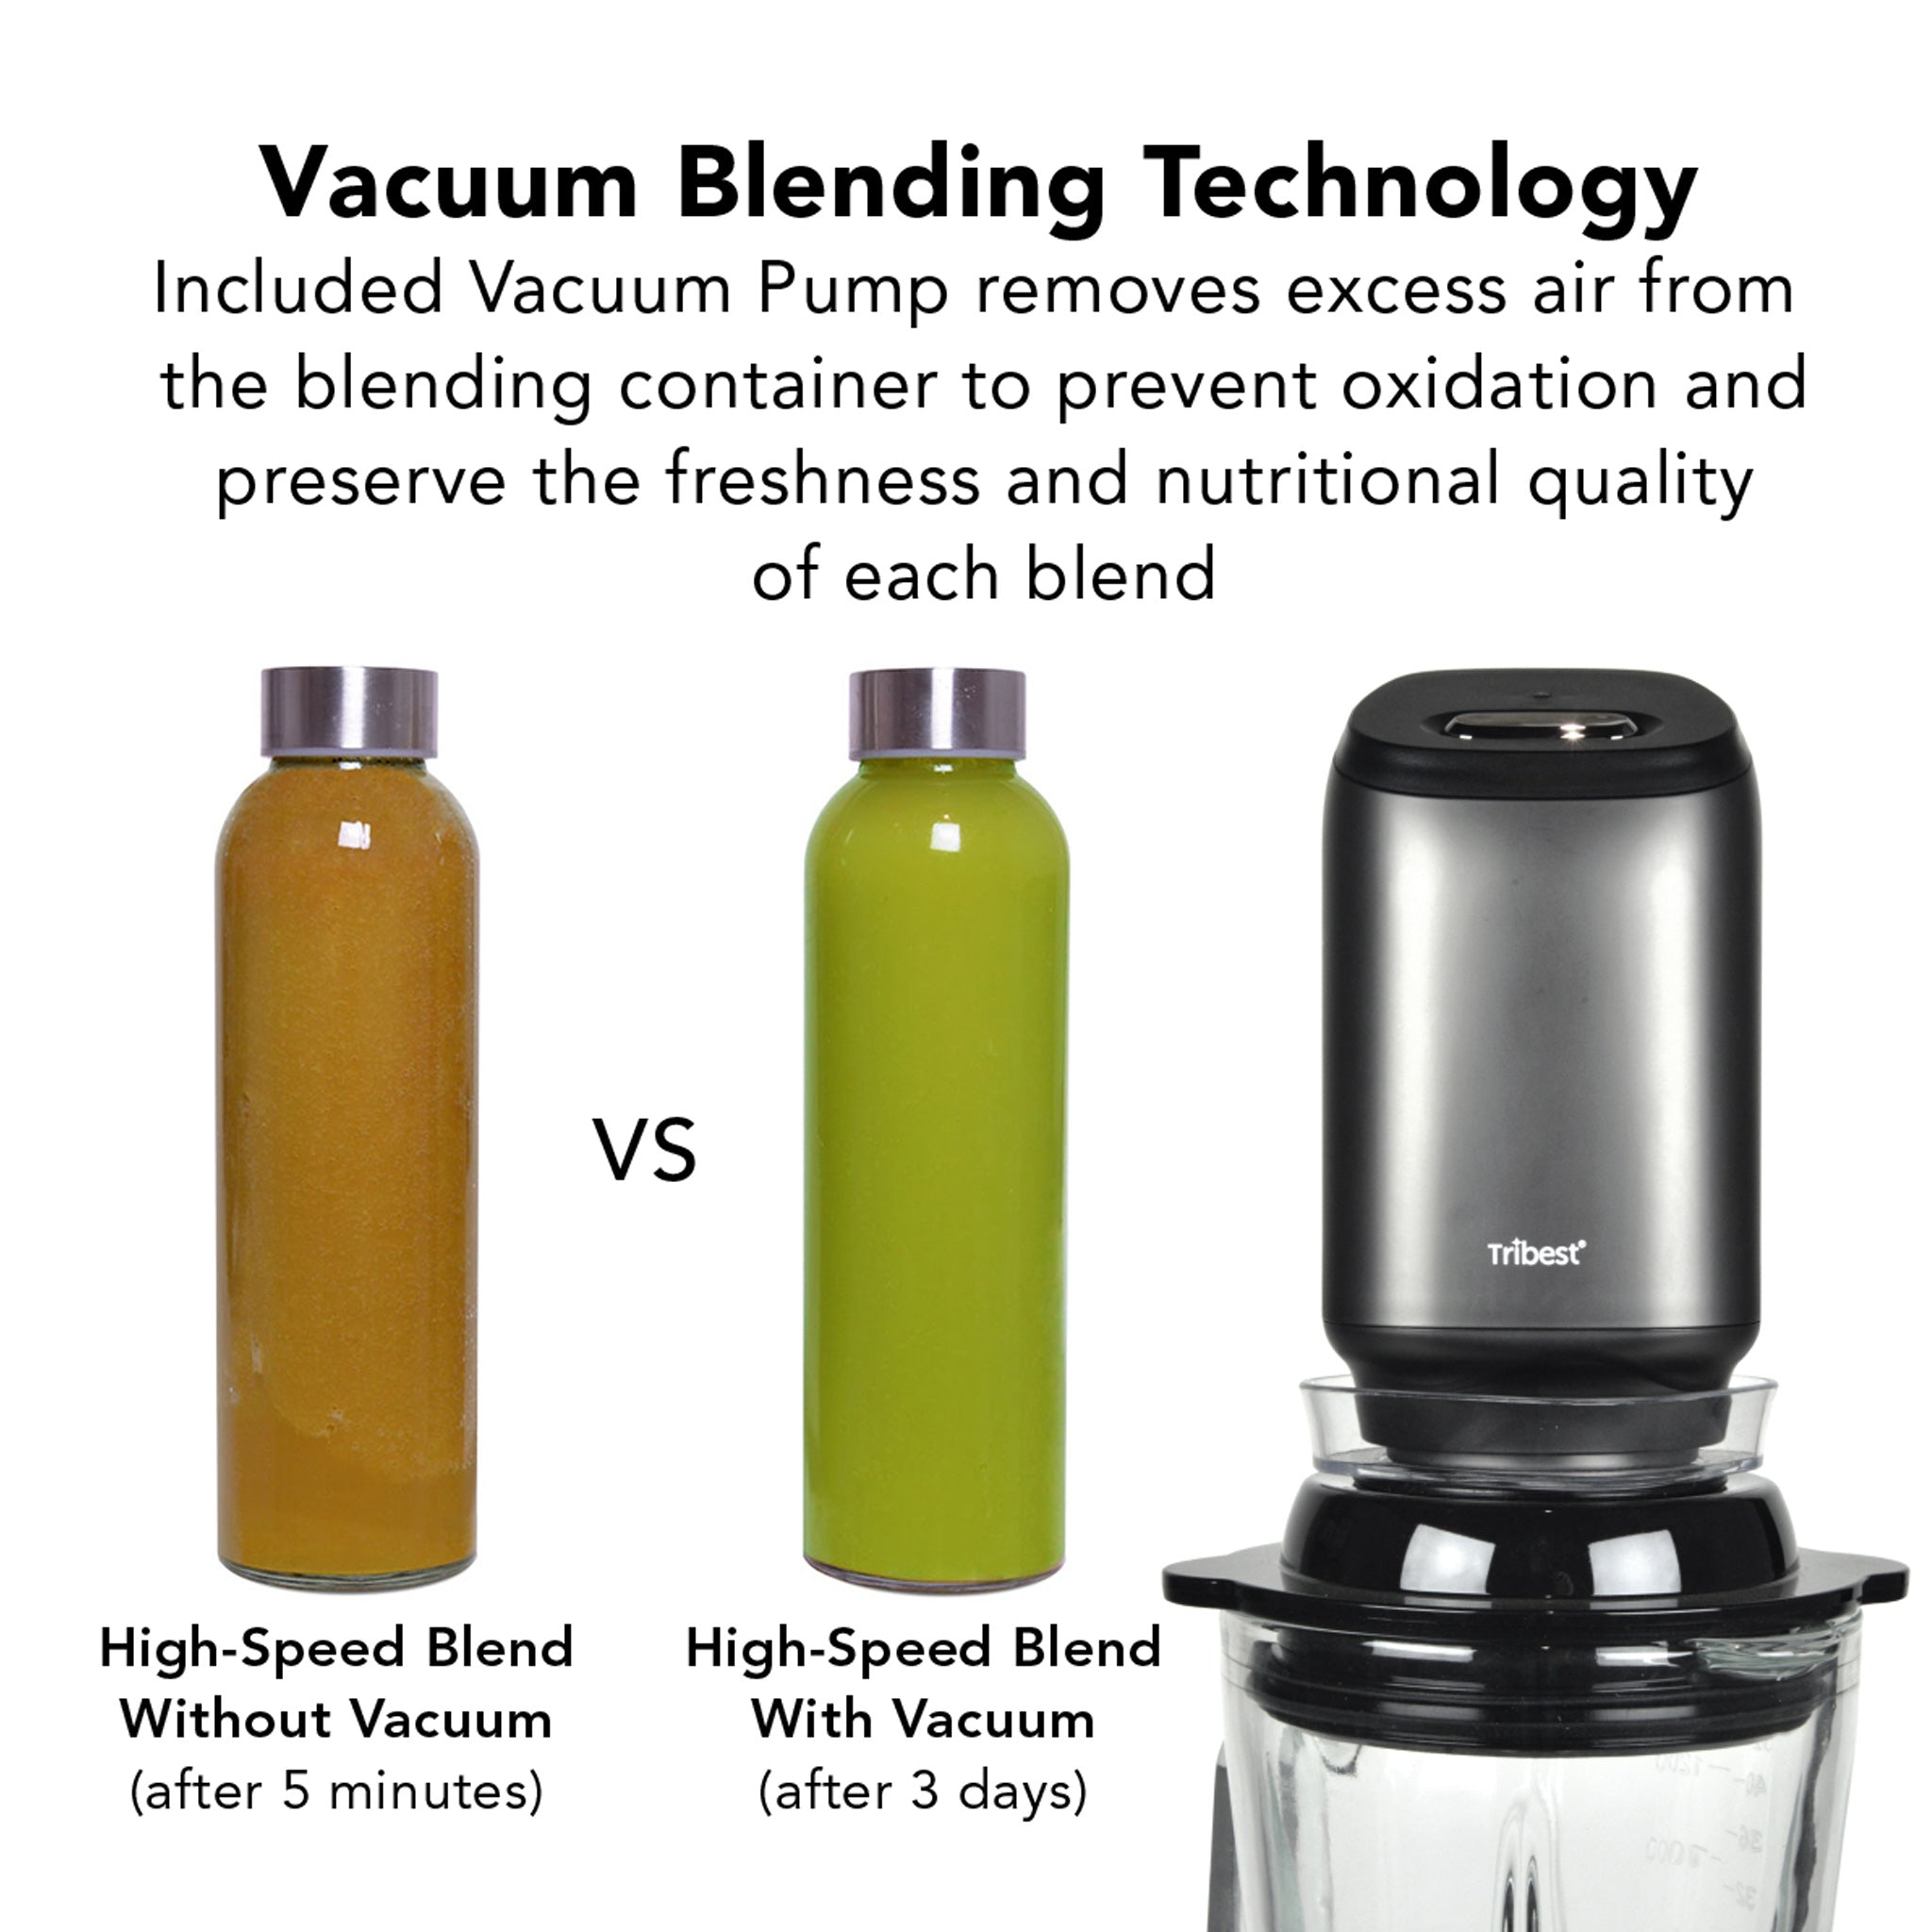 Glass Personal Blender with Vacuum PBG-5001-A - Green Apples Comparison - Tribest